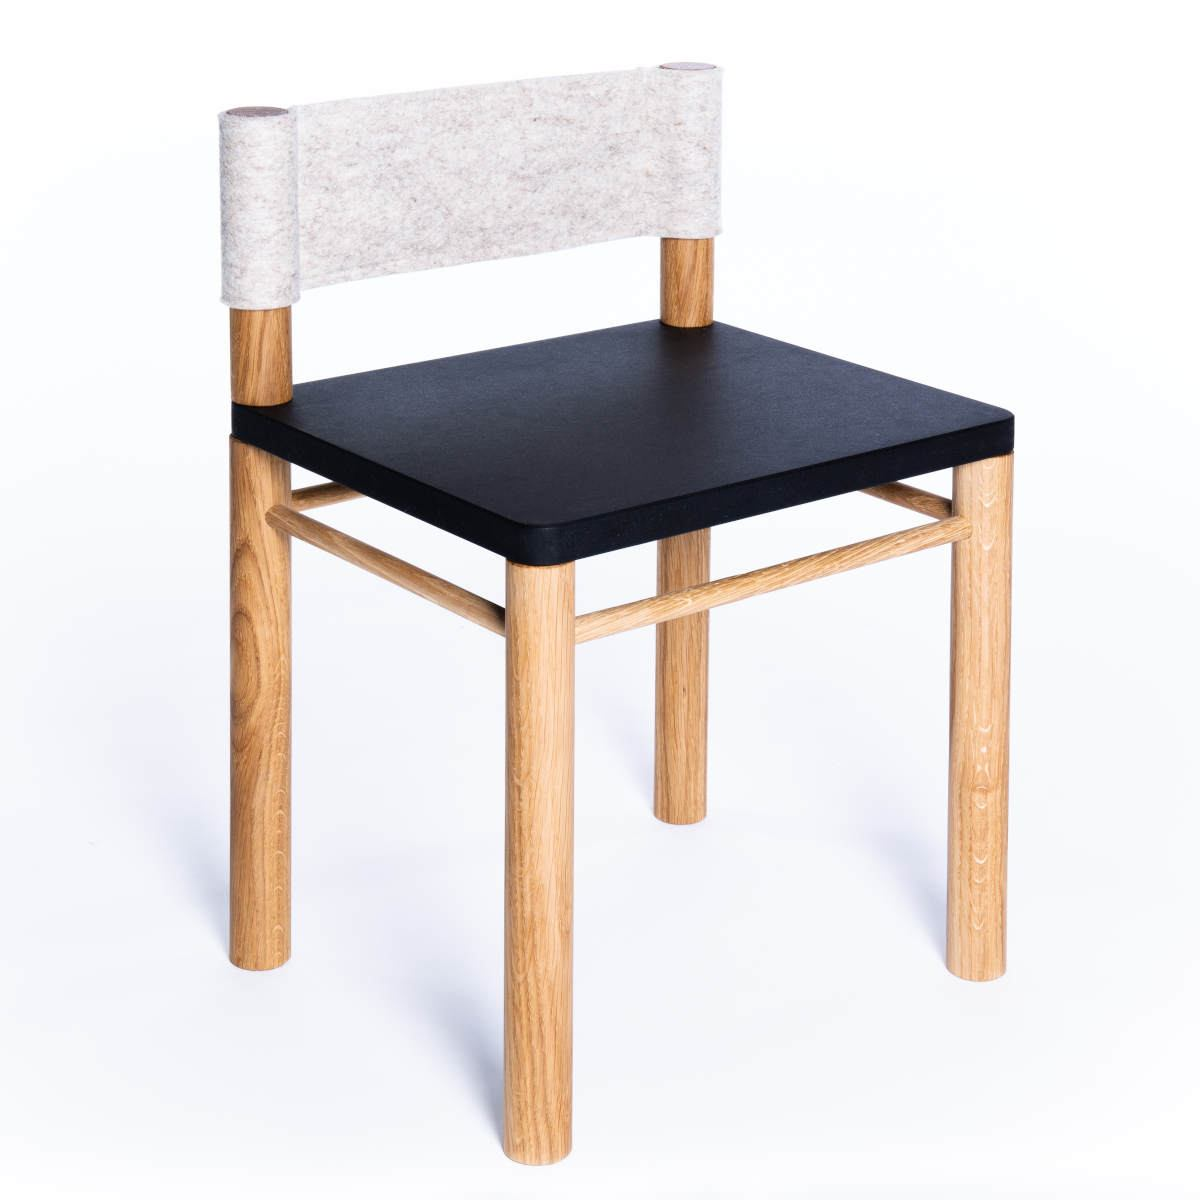 Black version: Solid wood children's chair with wool felt backrest